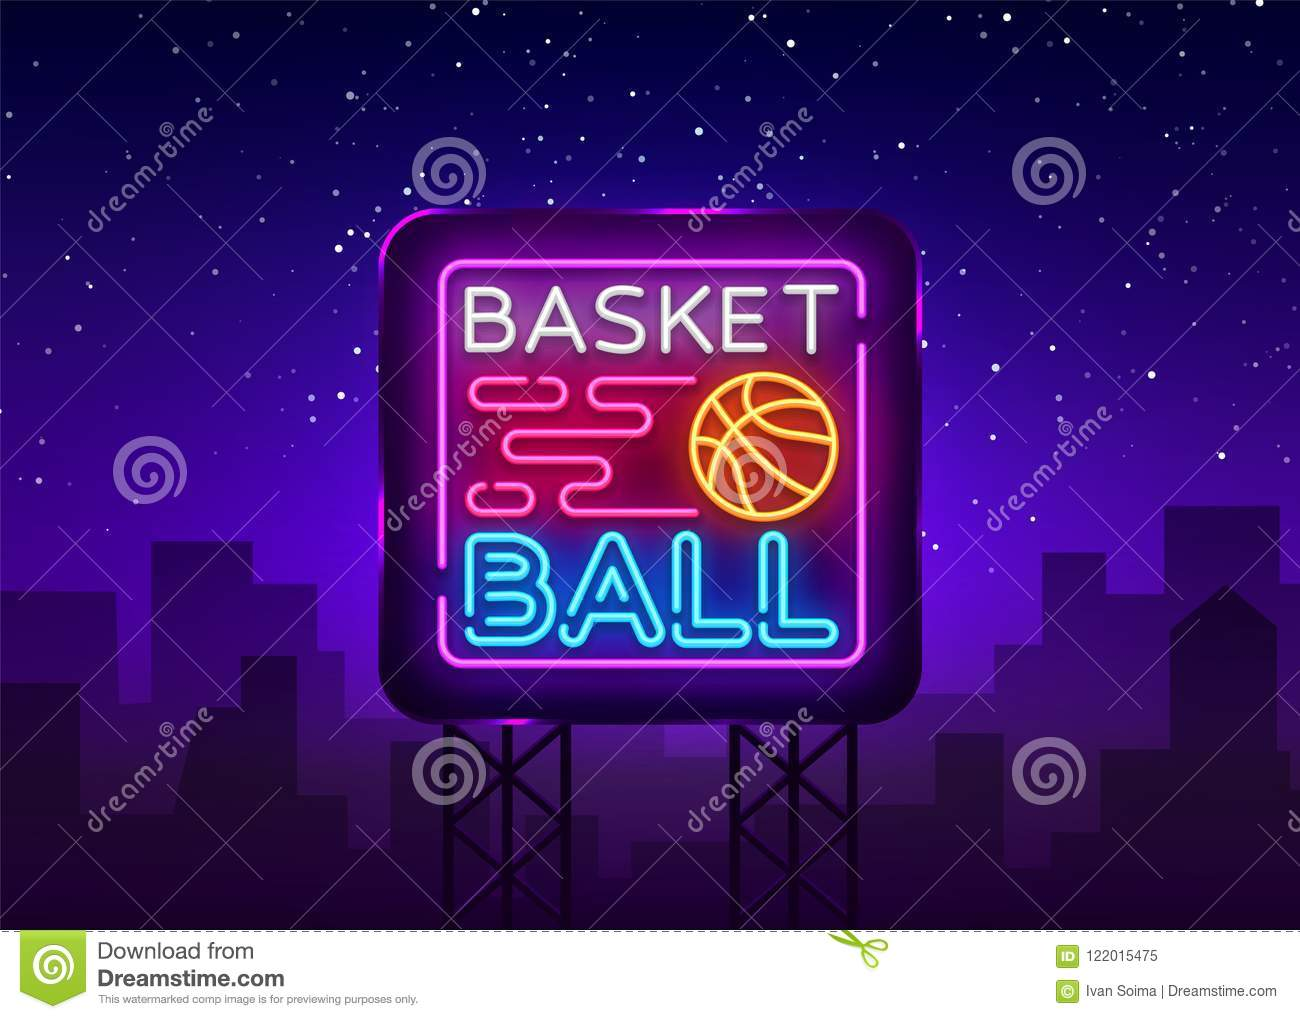 Basketball Night Neon Logo Vector. Basketball neon sign, design template, modern trend design, sports neon signboard